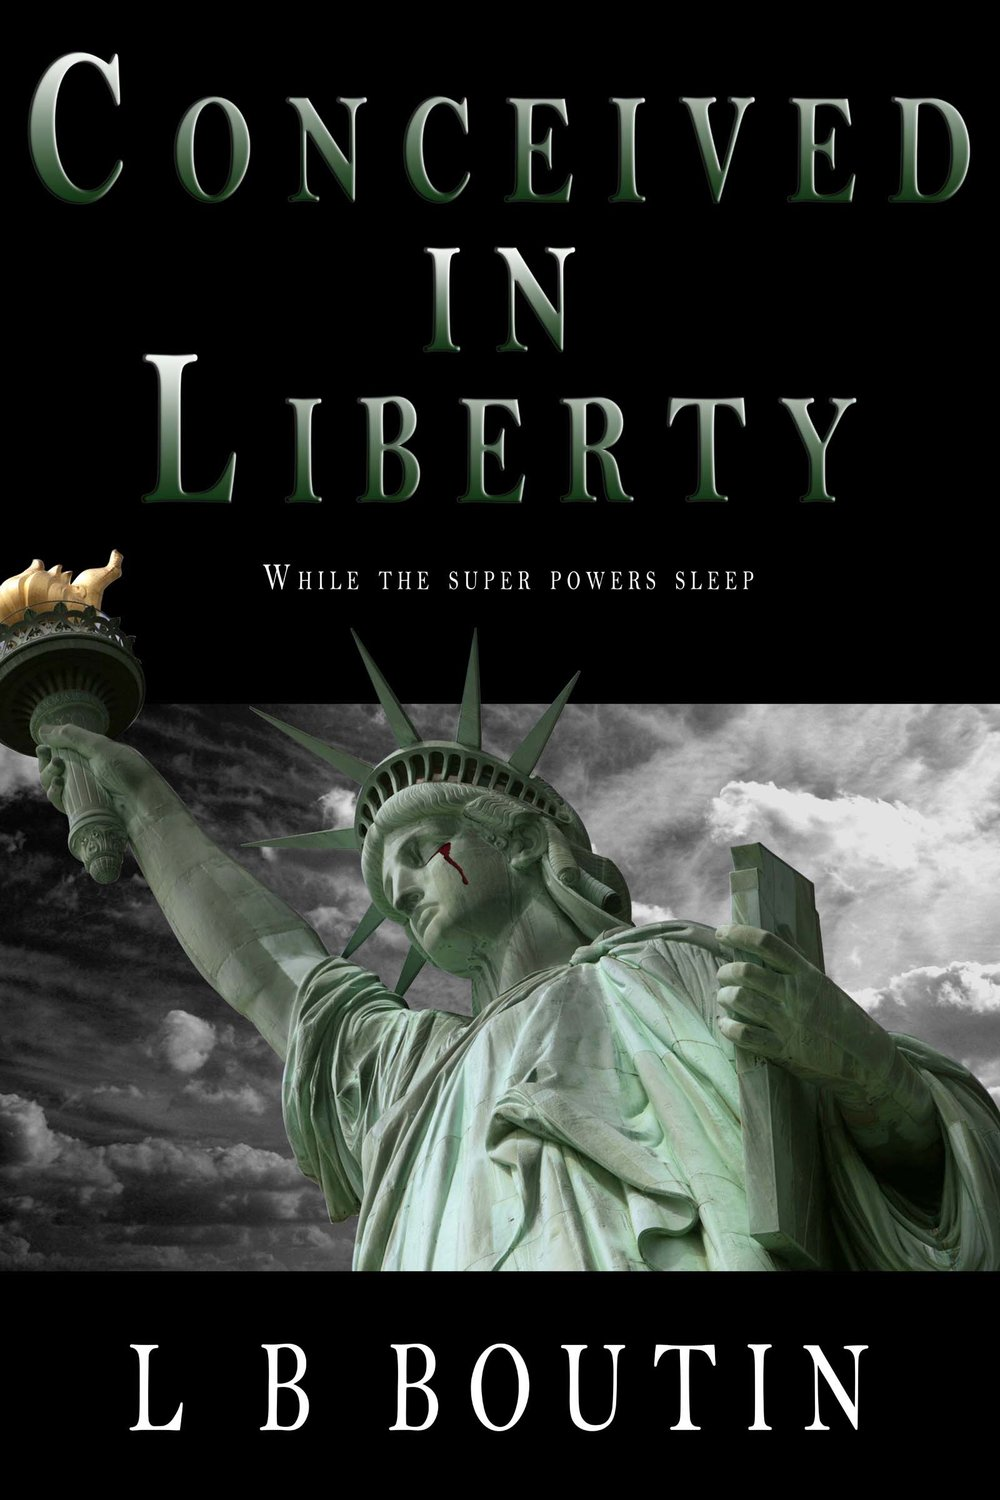 Conceived_in_Liberty_Book_Cover_fb.jpg